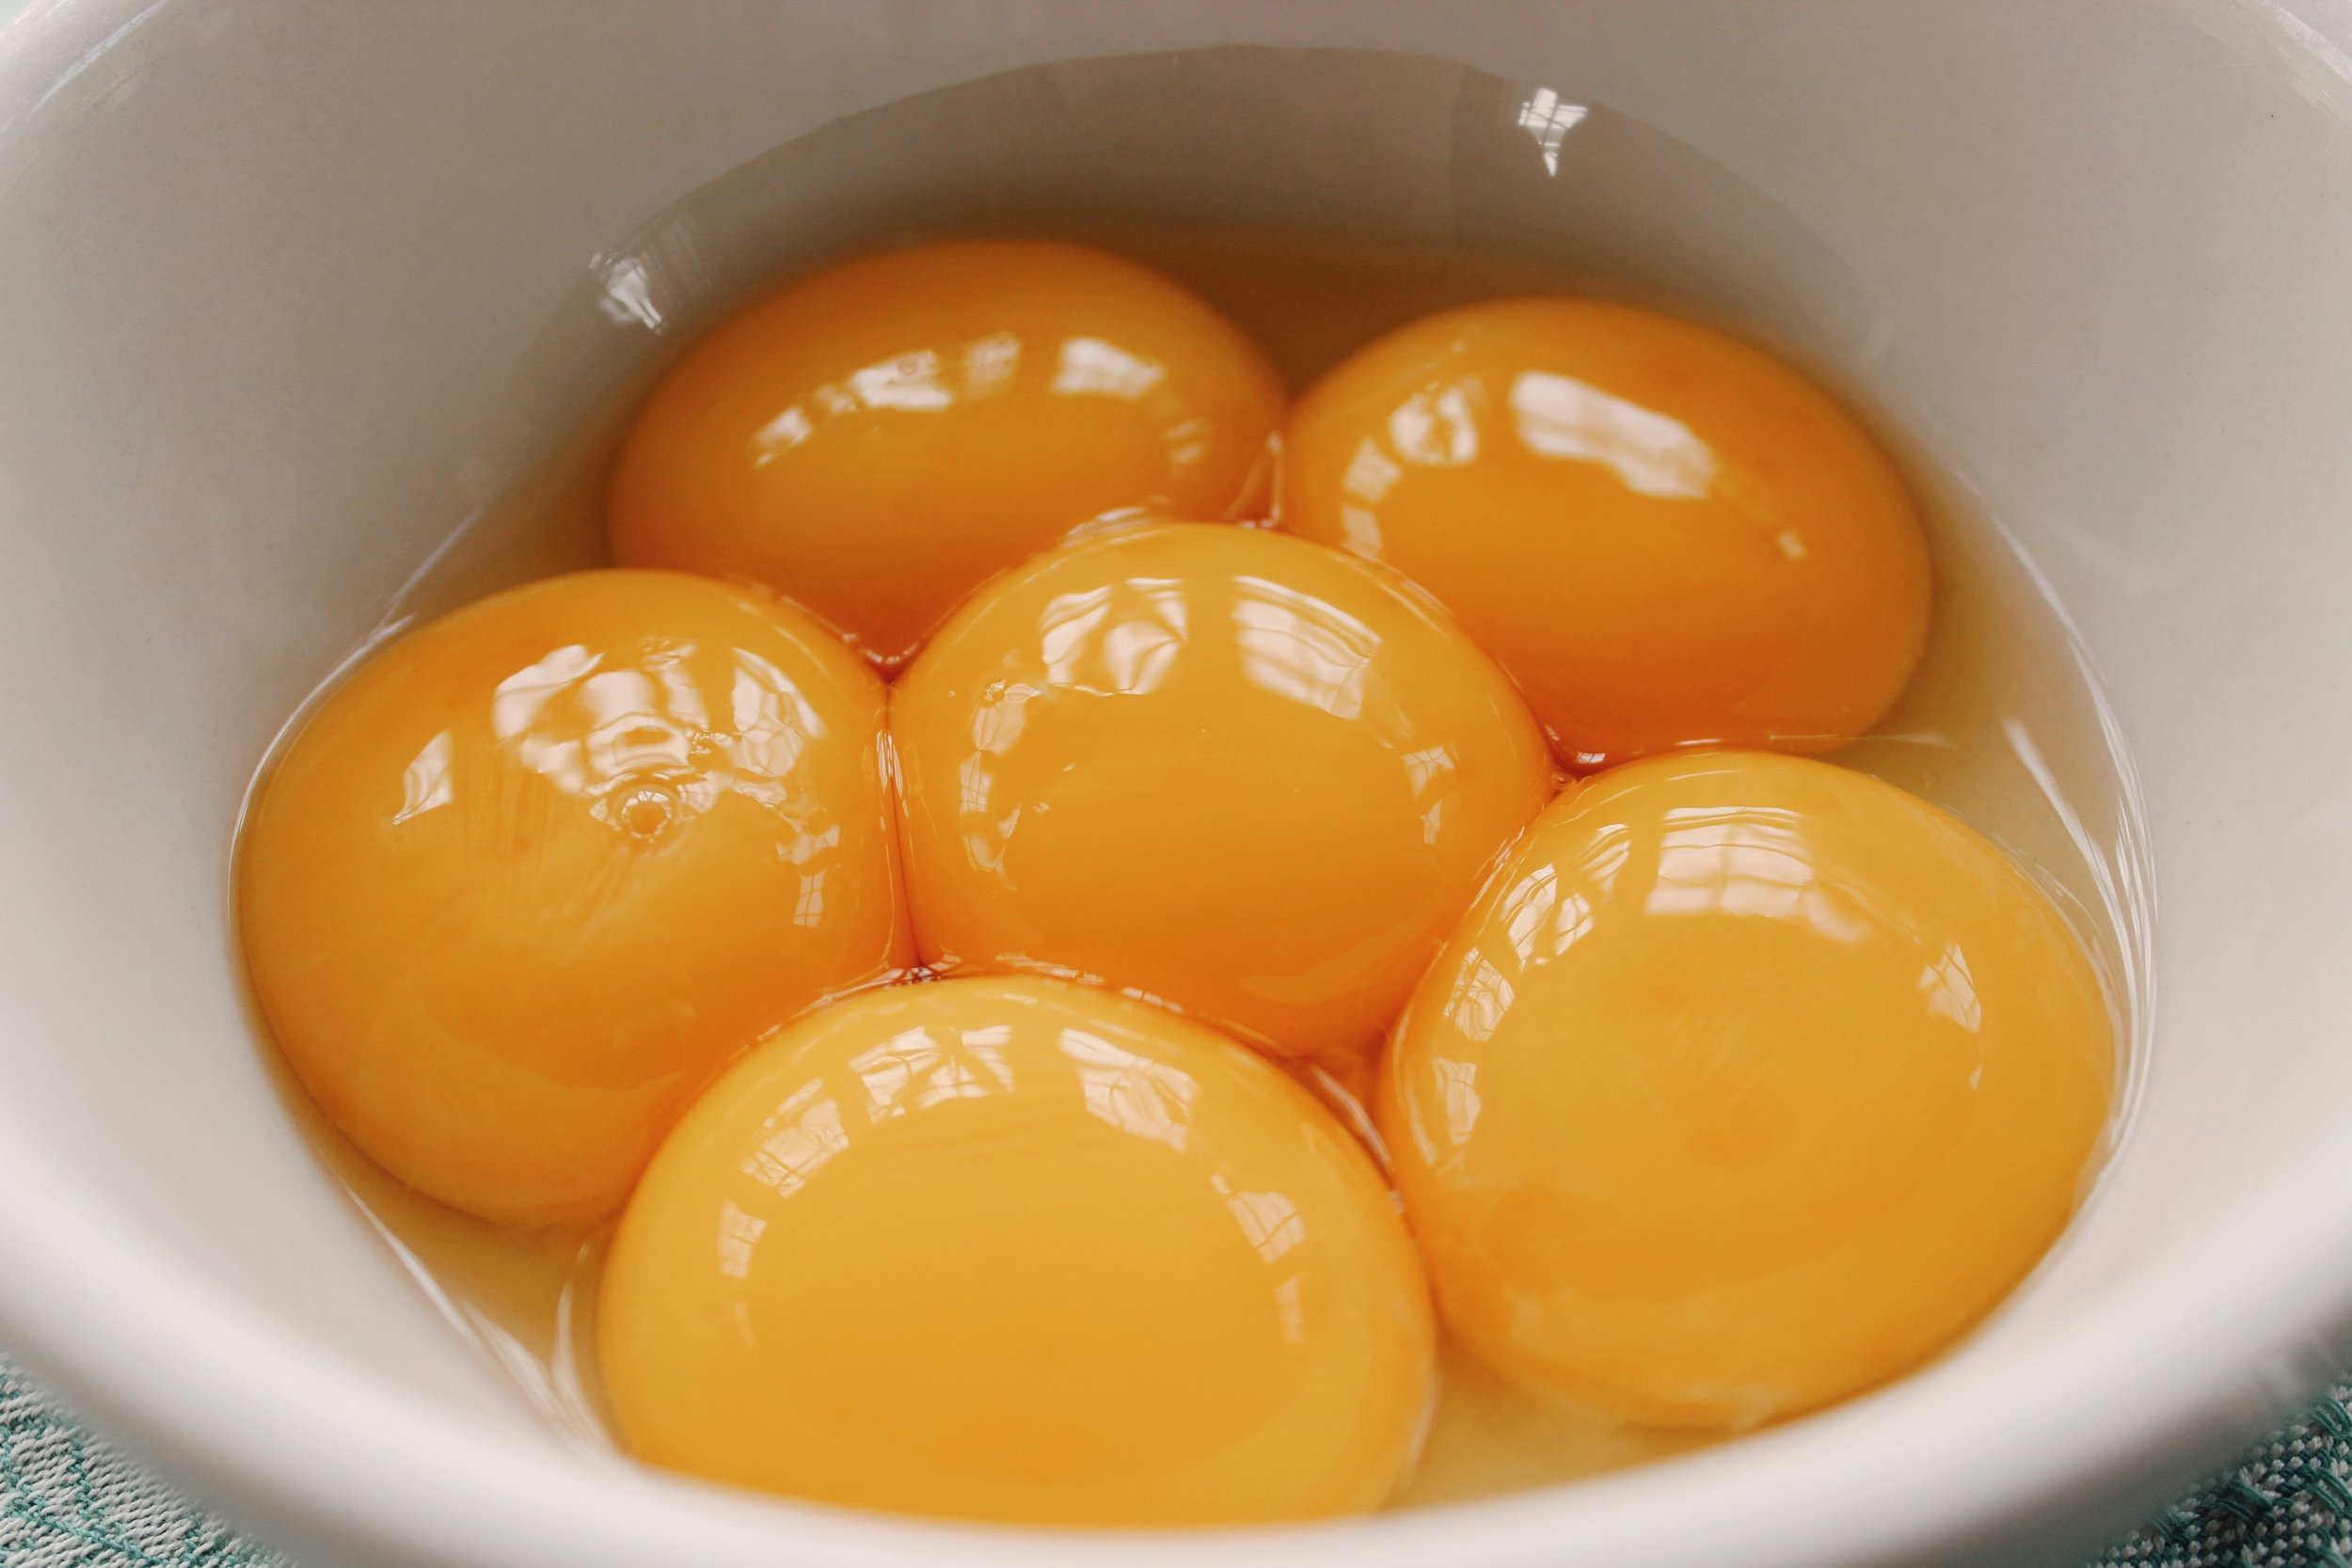 Separate 6 eggs, putting the yolks into the bowl of your stand mixer and saving the whites in another large mixing bowl.